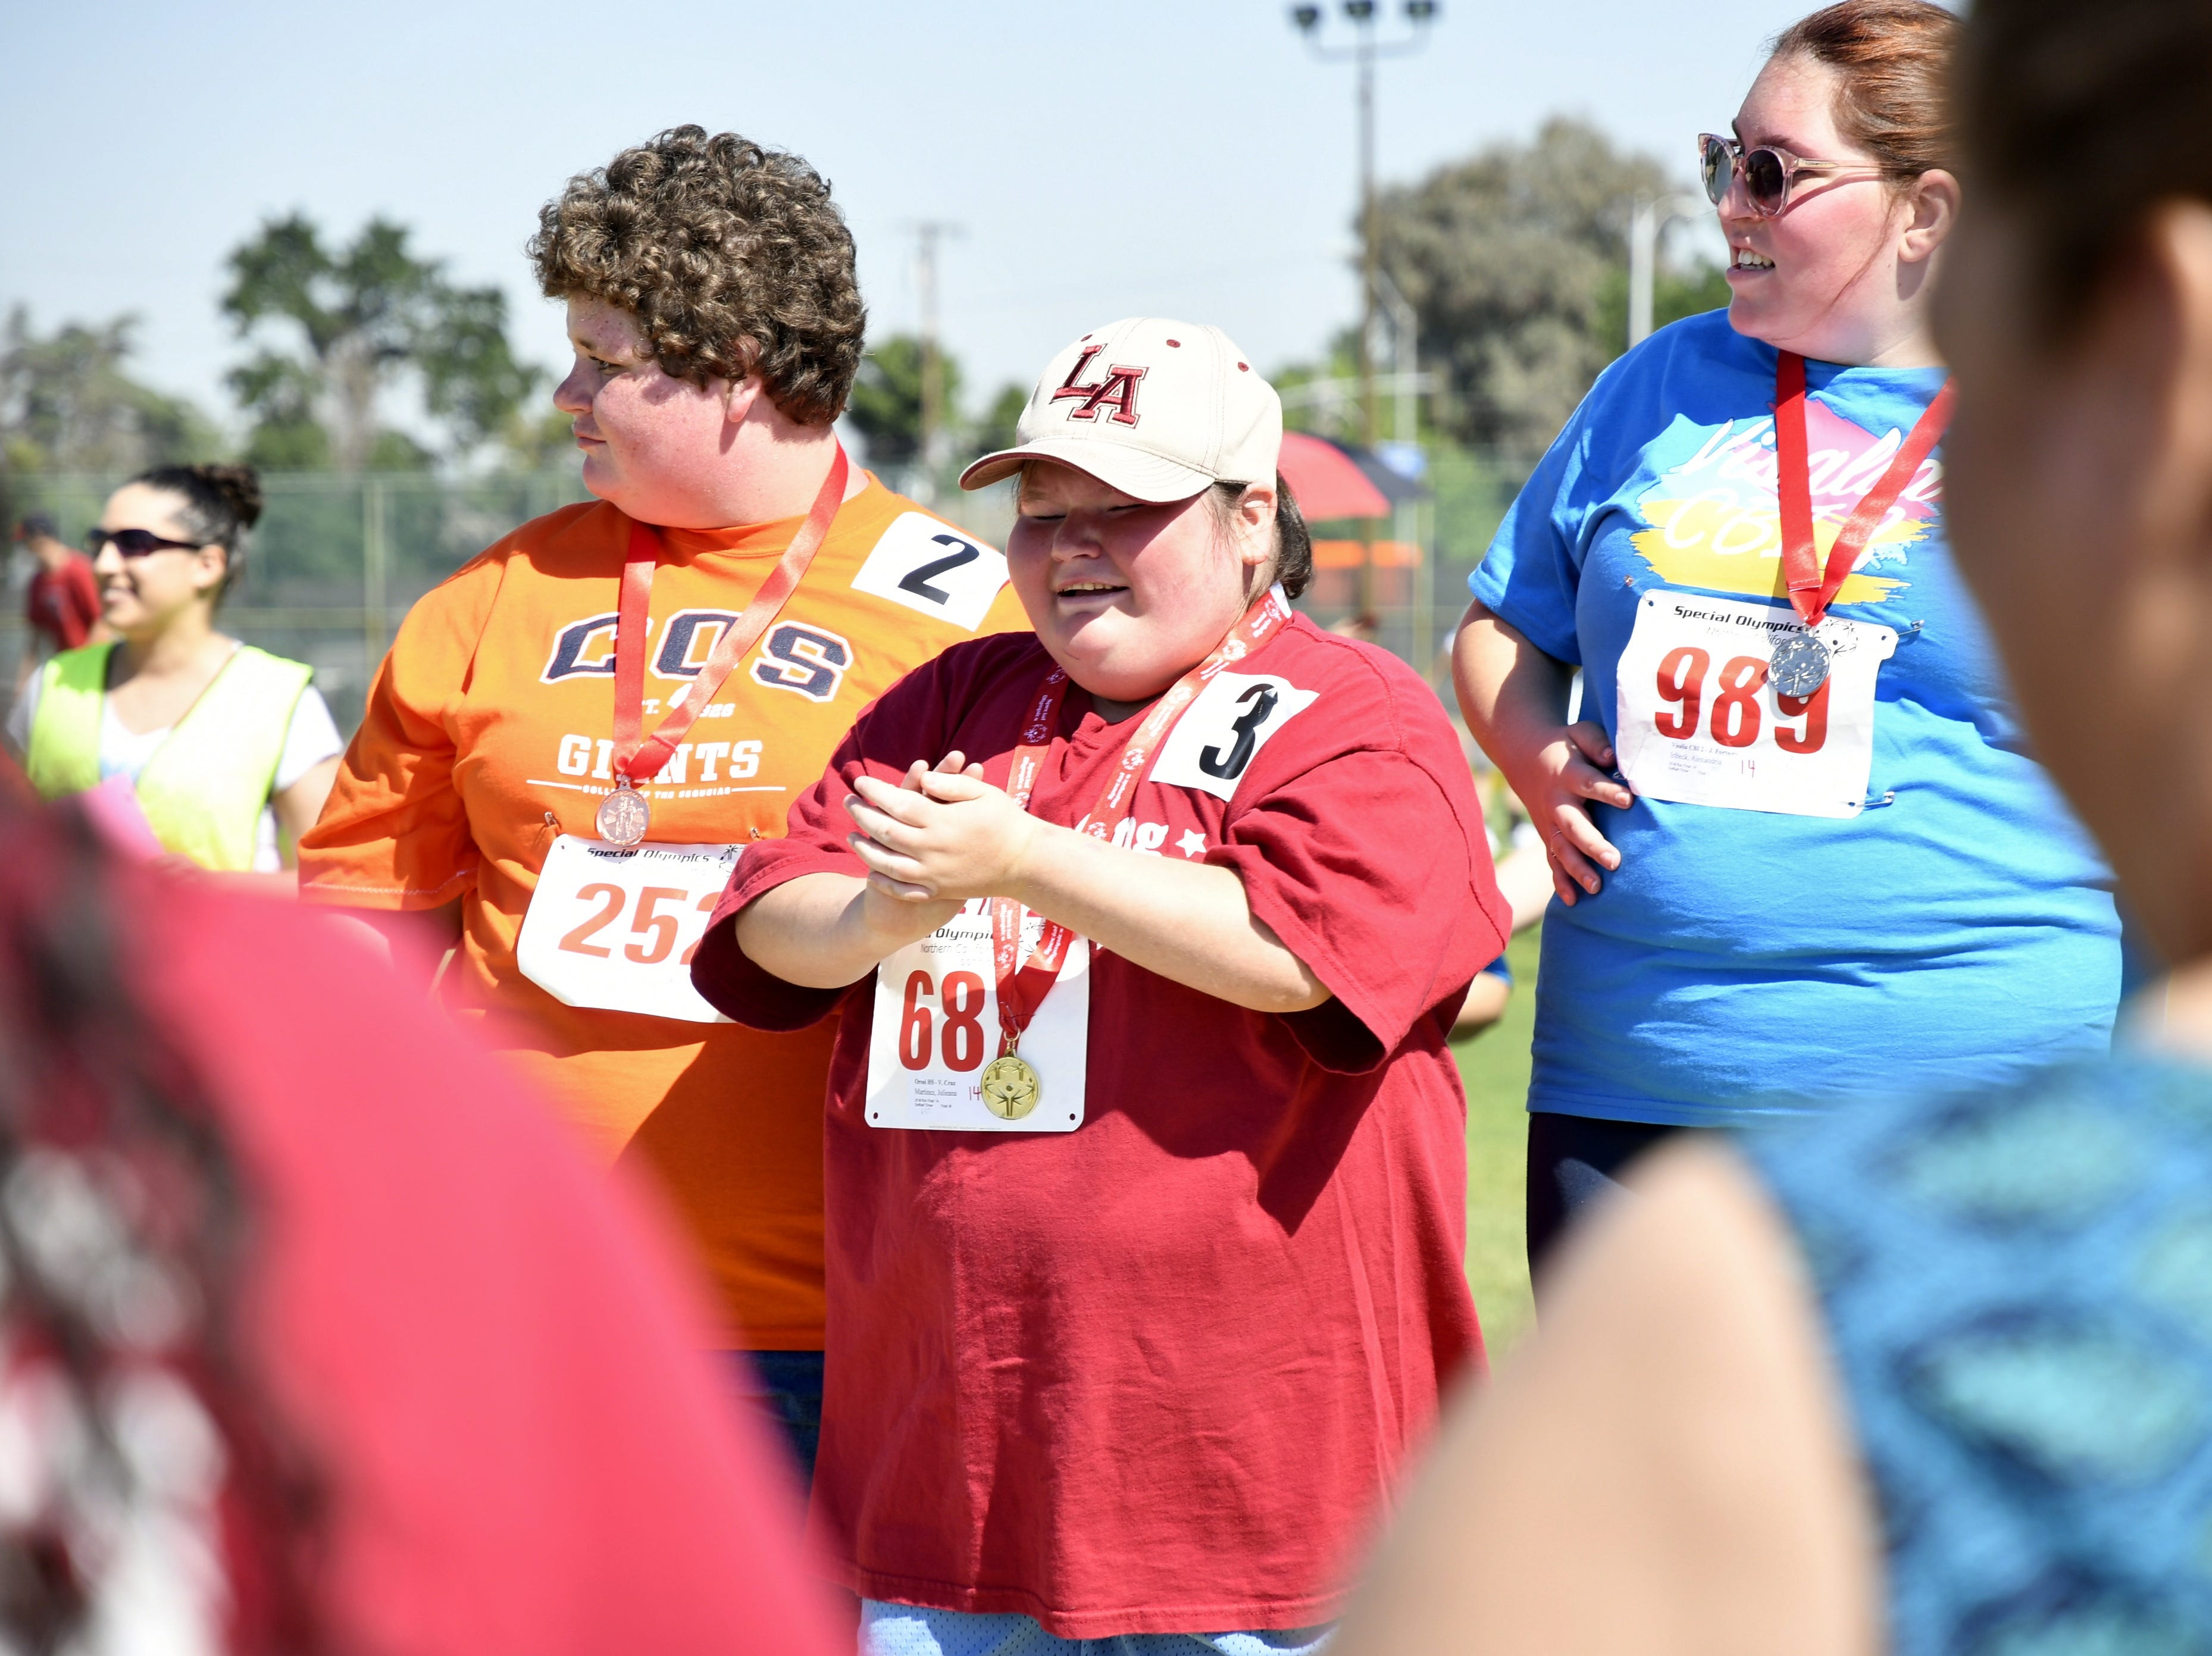 Athletes accept their medals at the 2019 Tulare County Special Olympics at Bob Mathias Stadium on Friday, April 26, 2019.